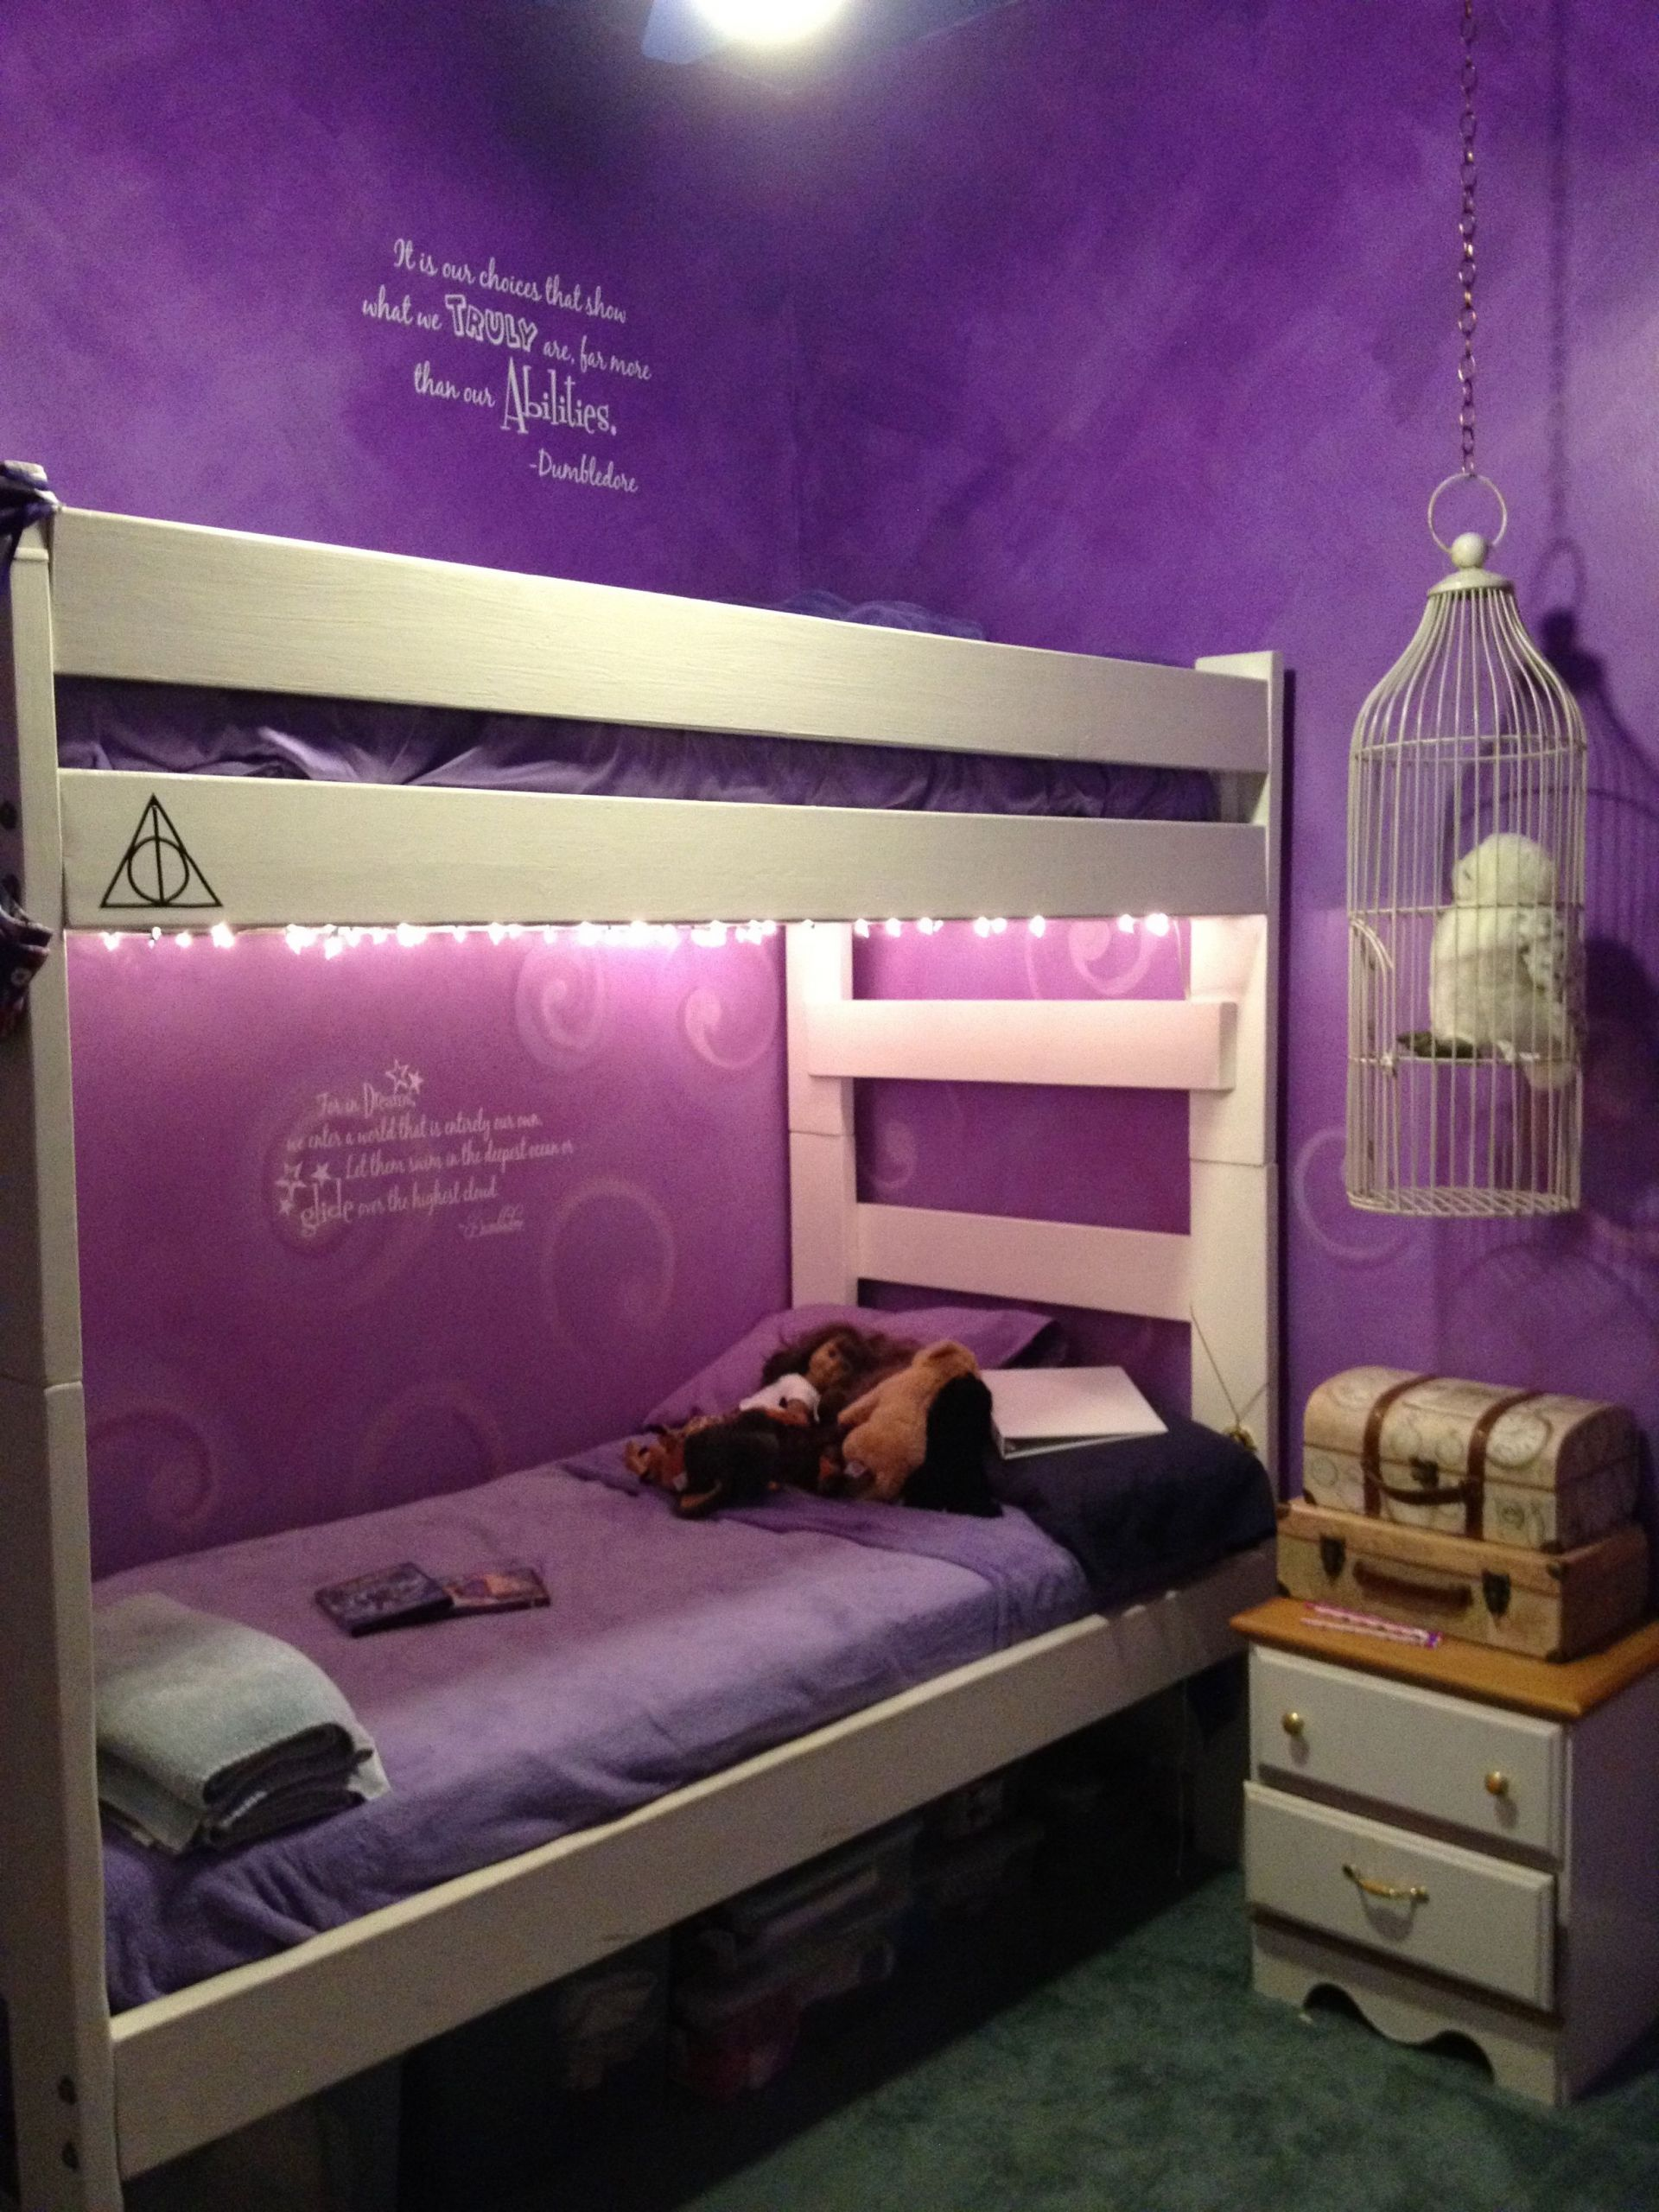 Harry Potter Bedroom Wallpaper  Harry Potter Bedroom I love Harry Potter plus those